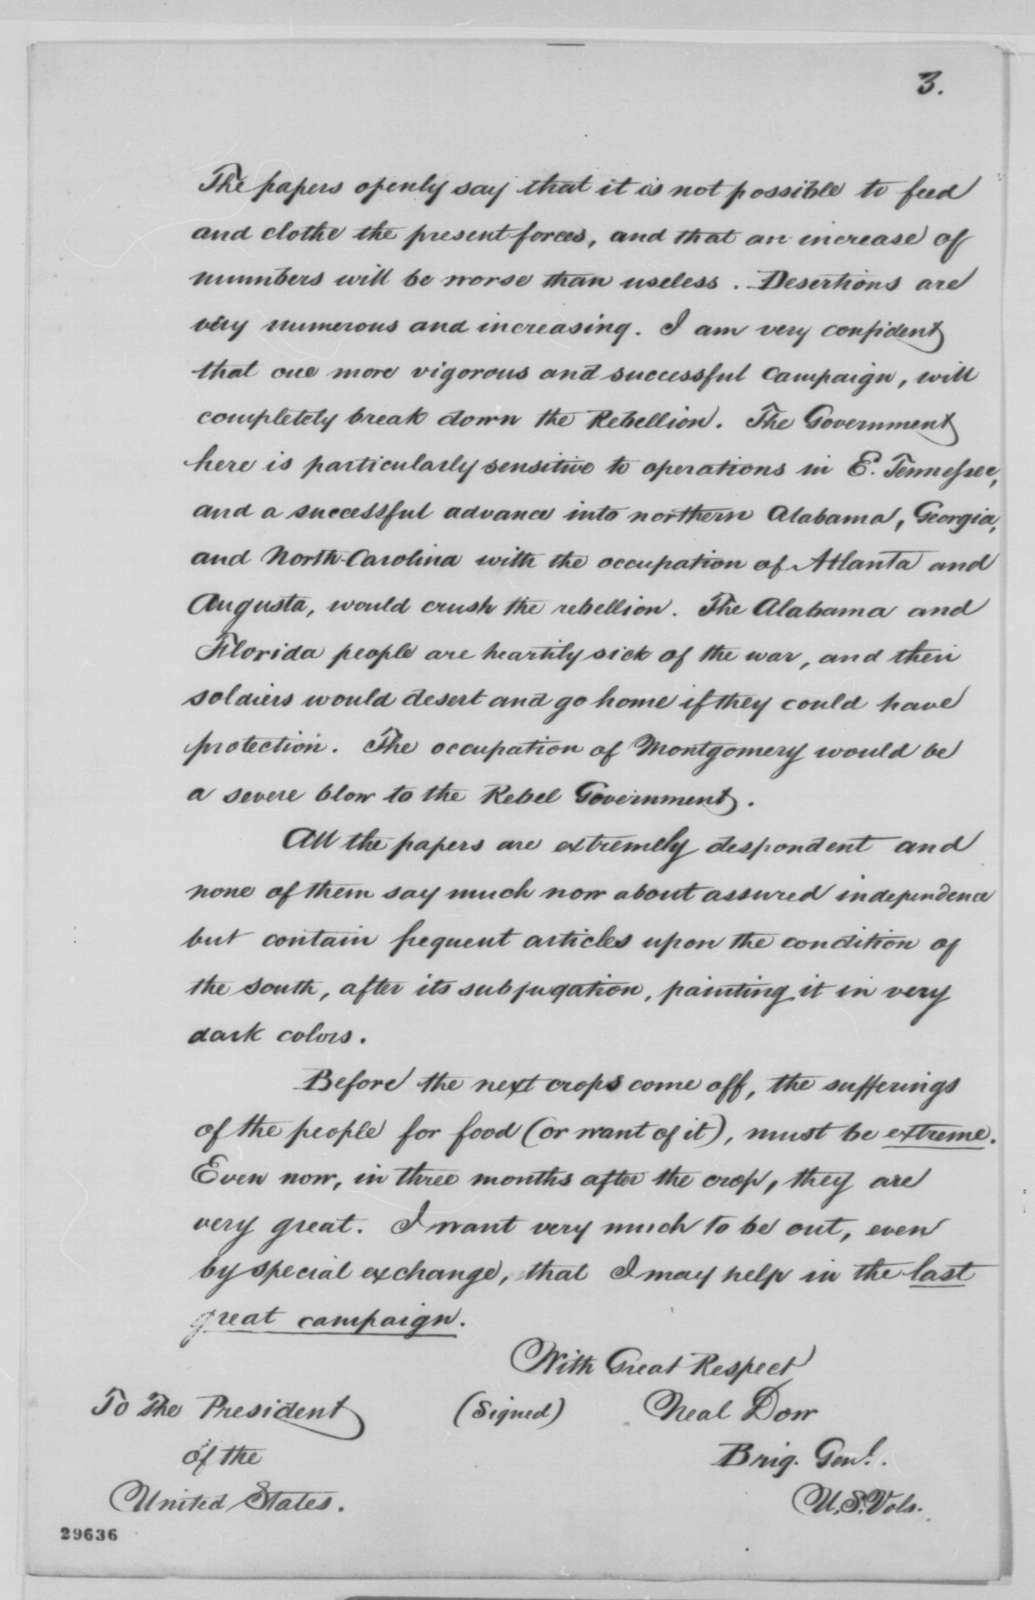 Neal Dow to Abraham Lincoln, Wednesday, January 20, 1864  (Conditions at prison camp in Richmond)